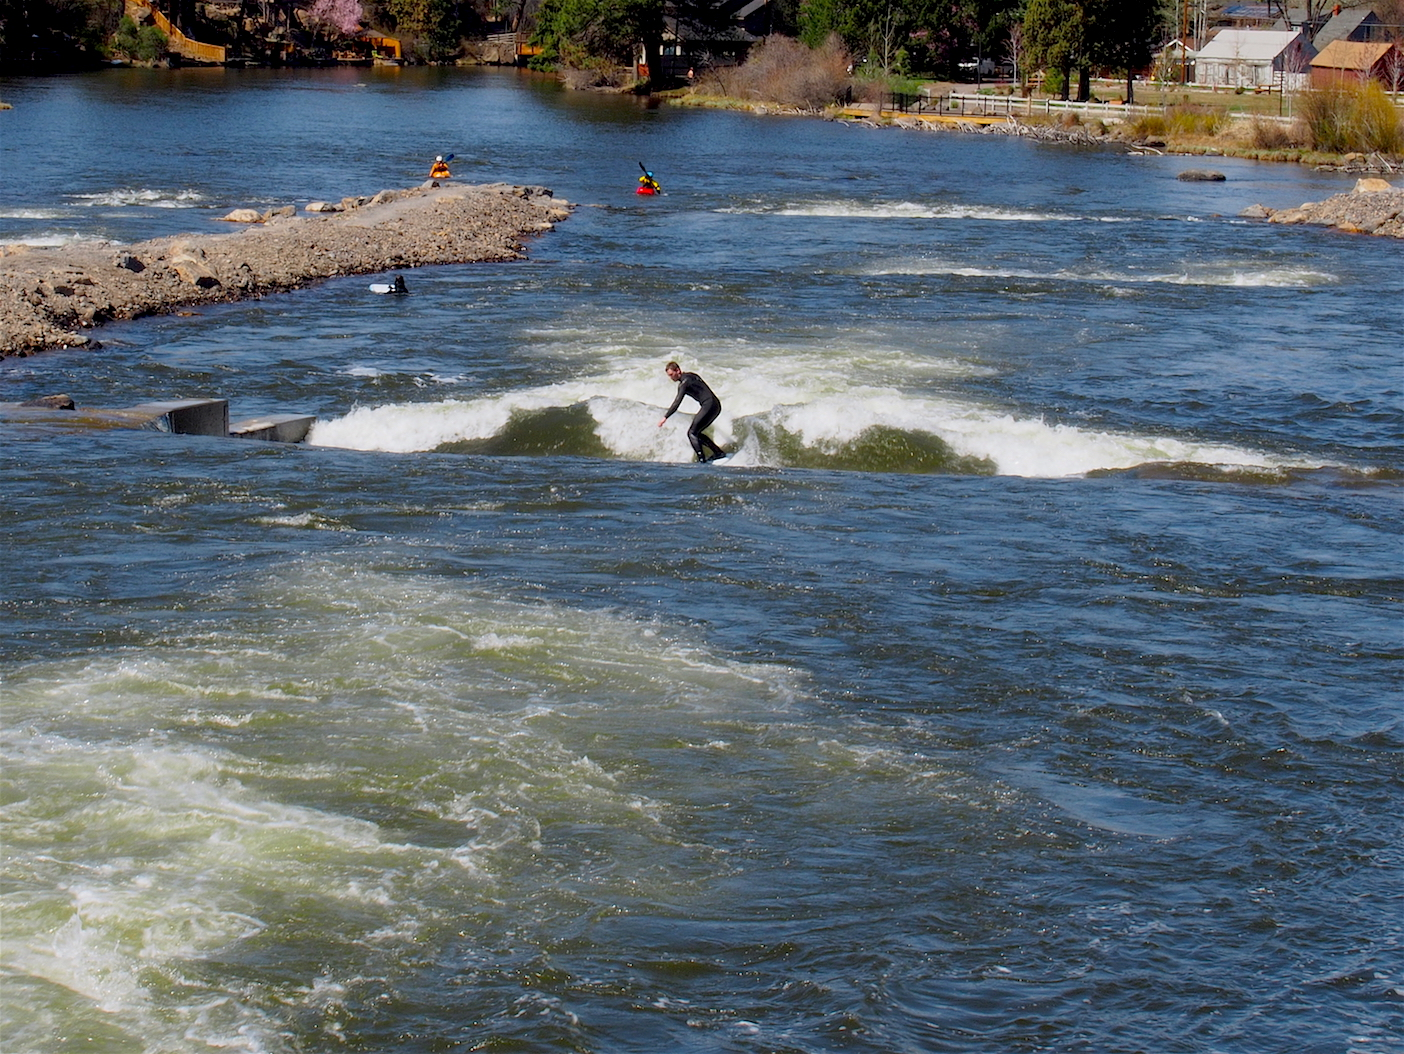 Surfer at Bend Whitewater Park